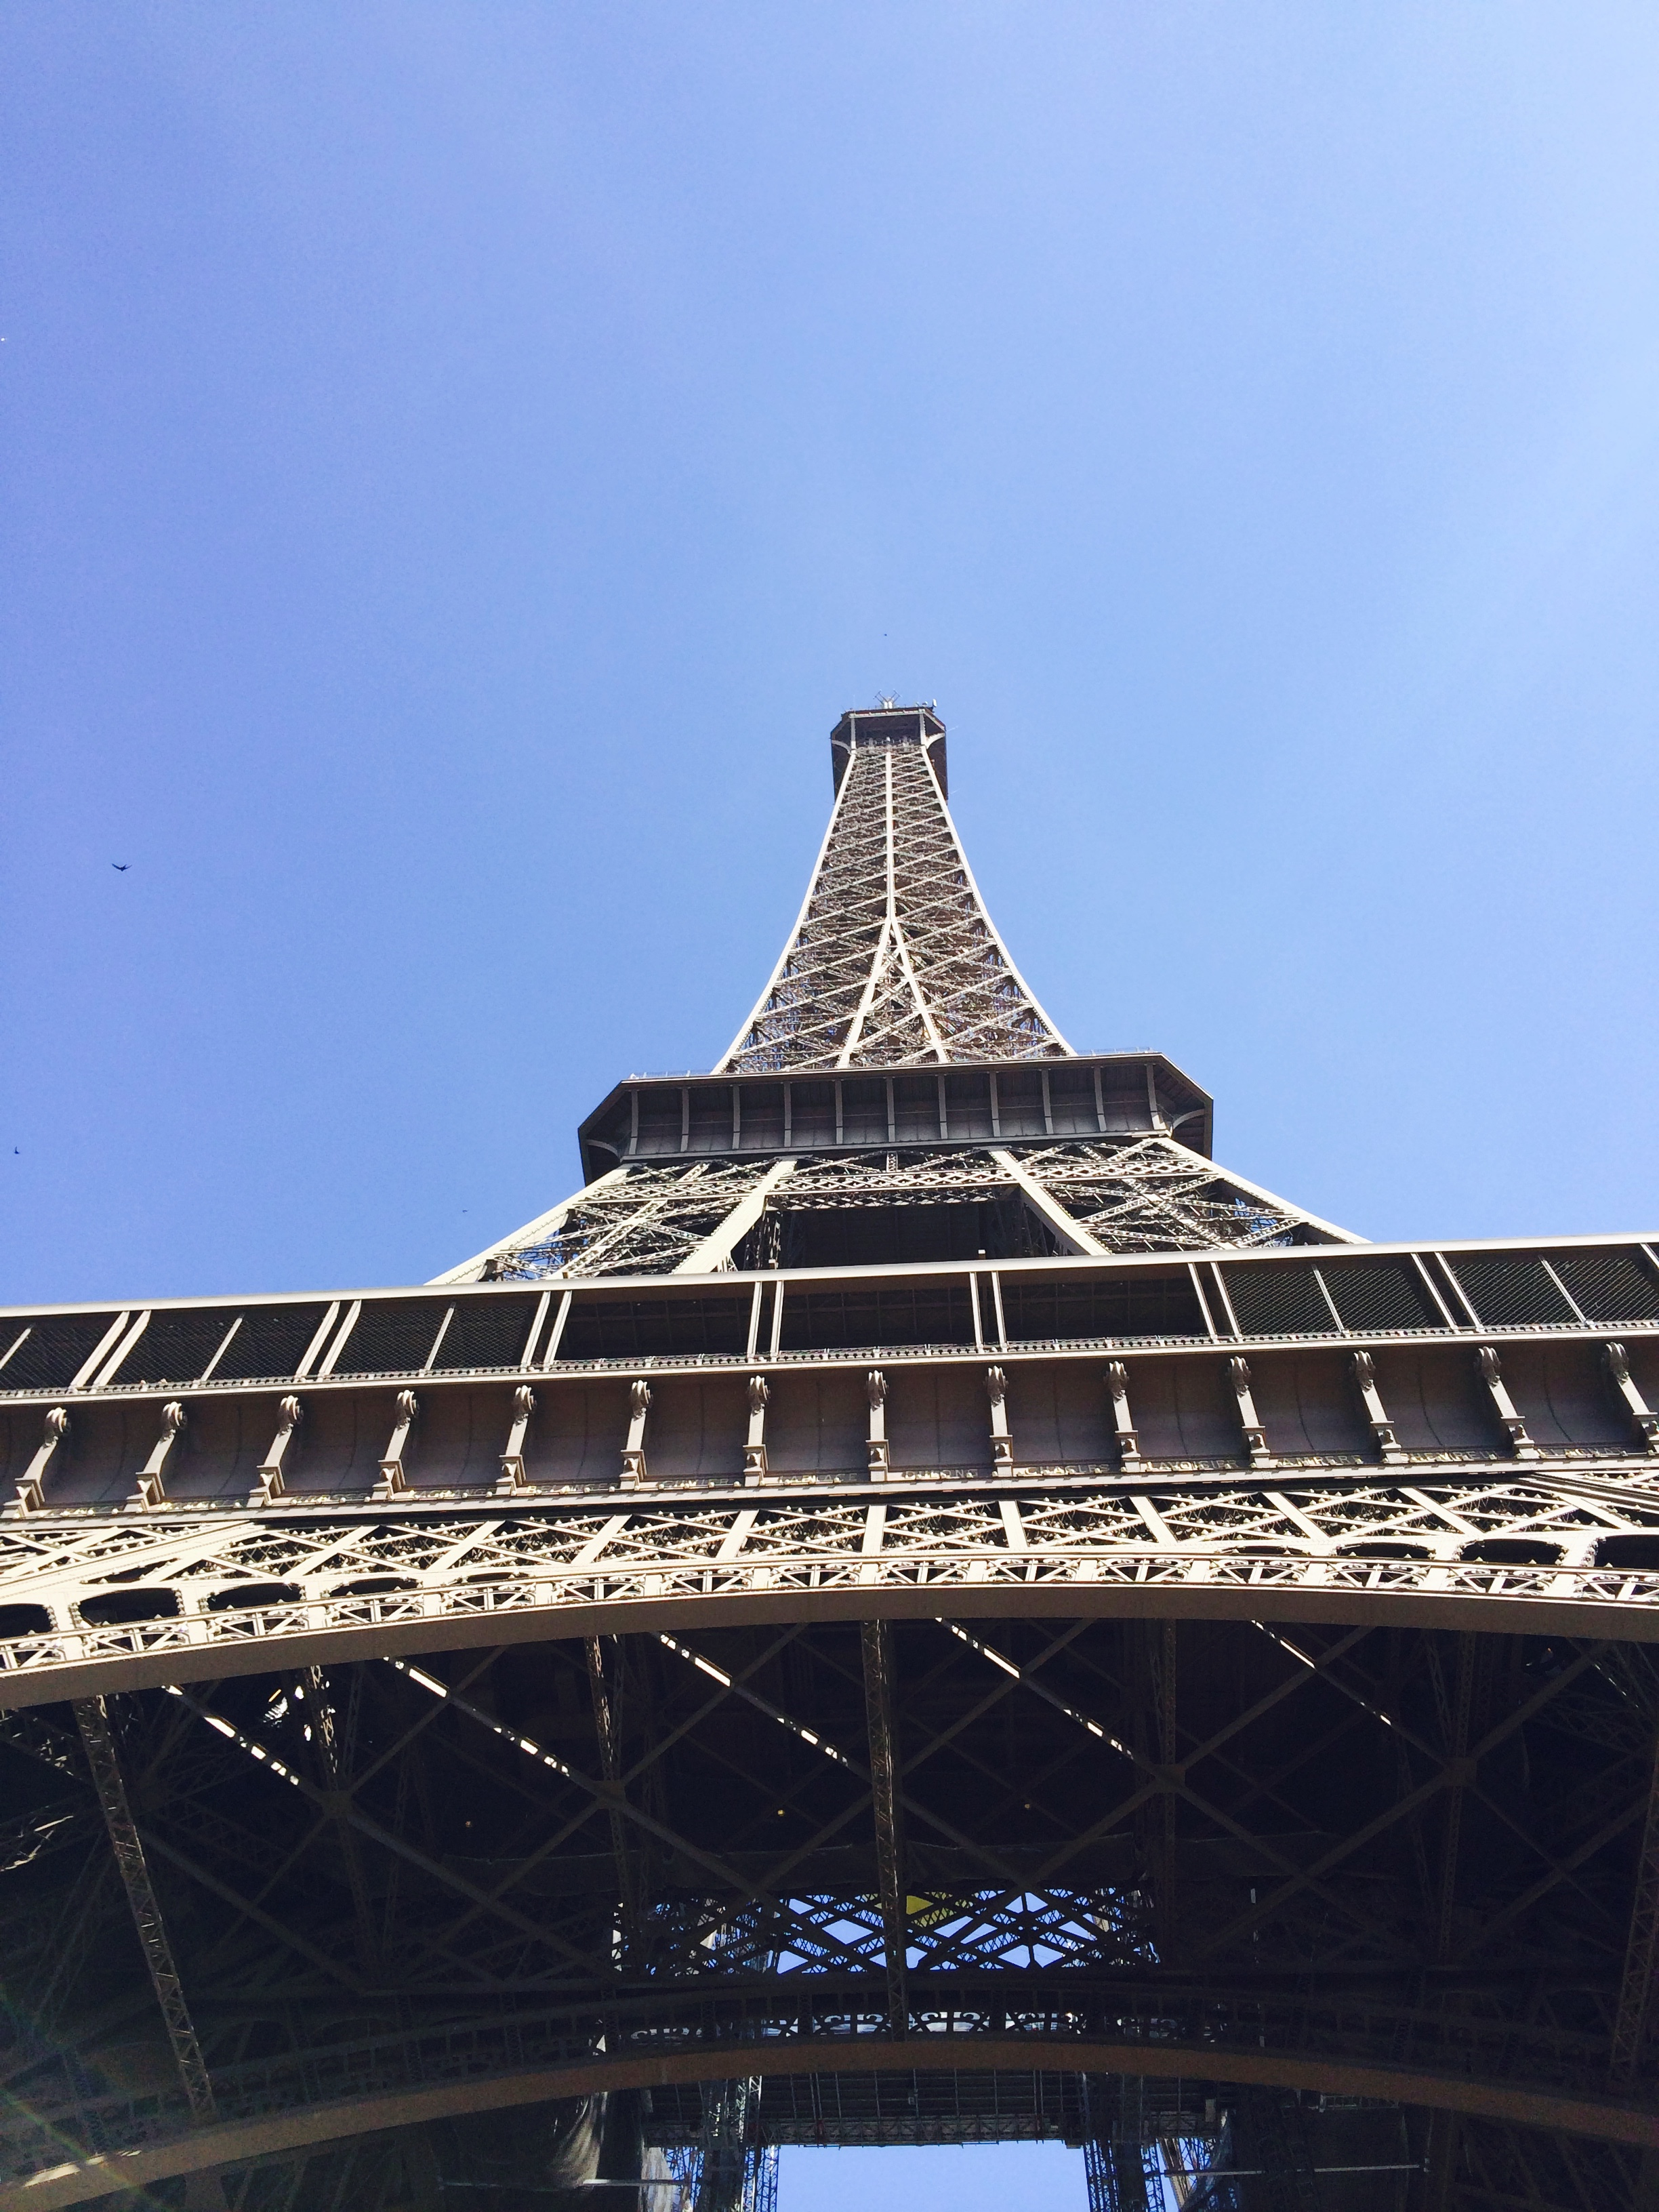 A view from below the Eiffel Tower